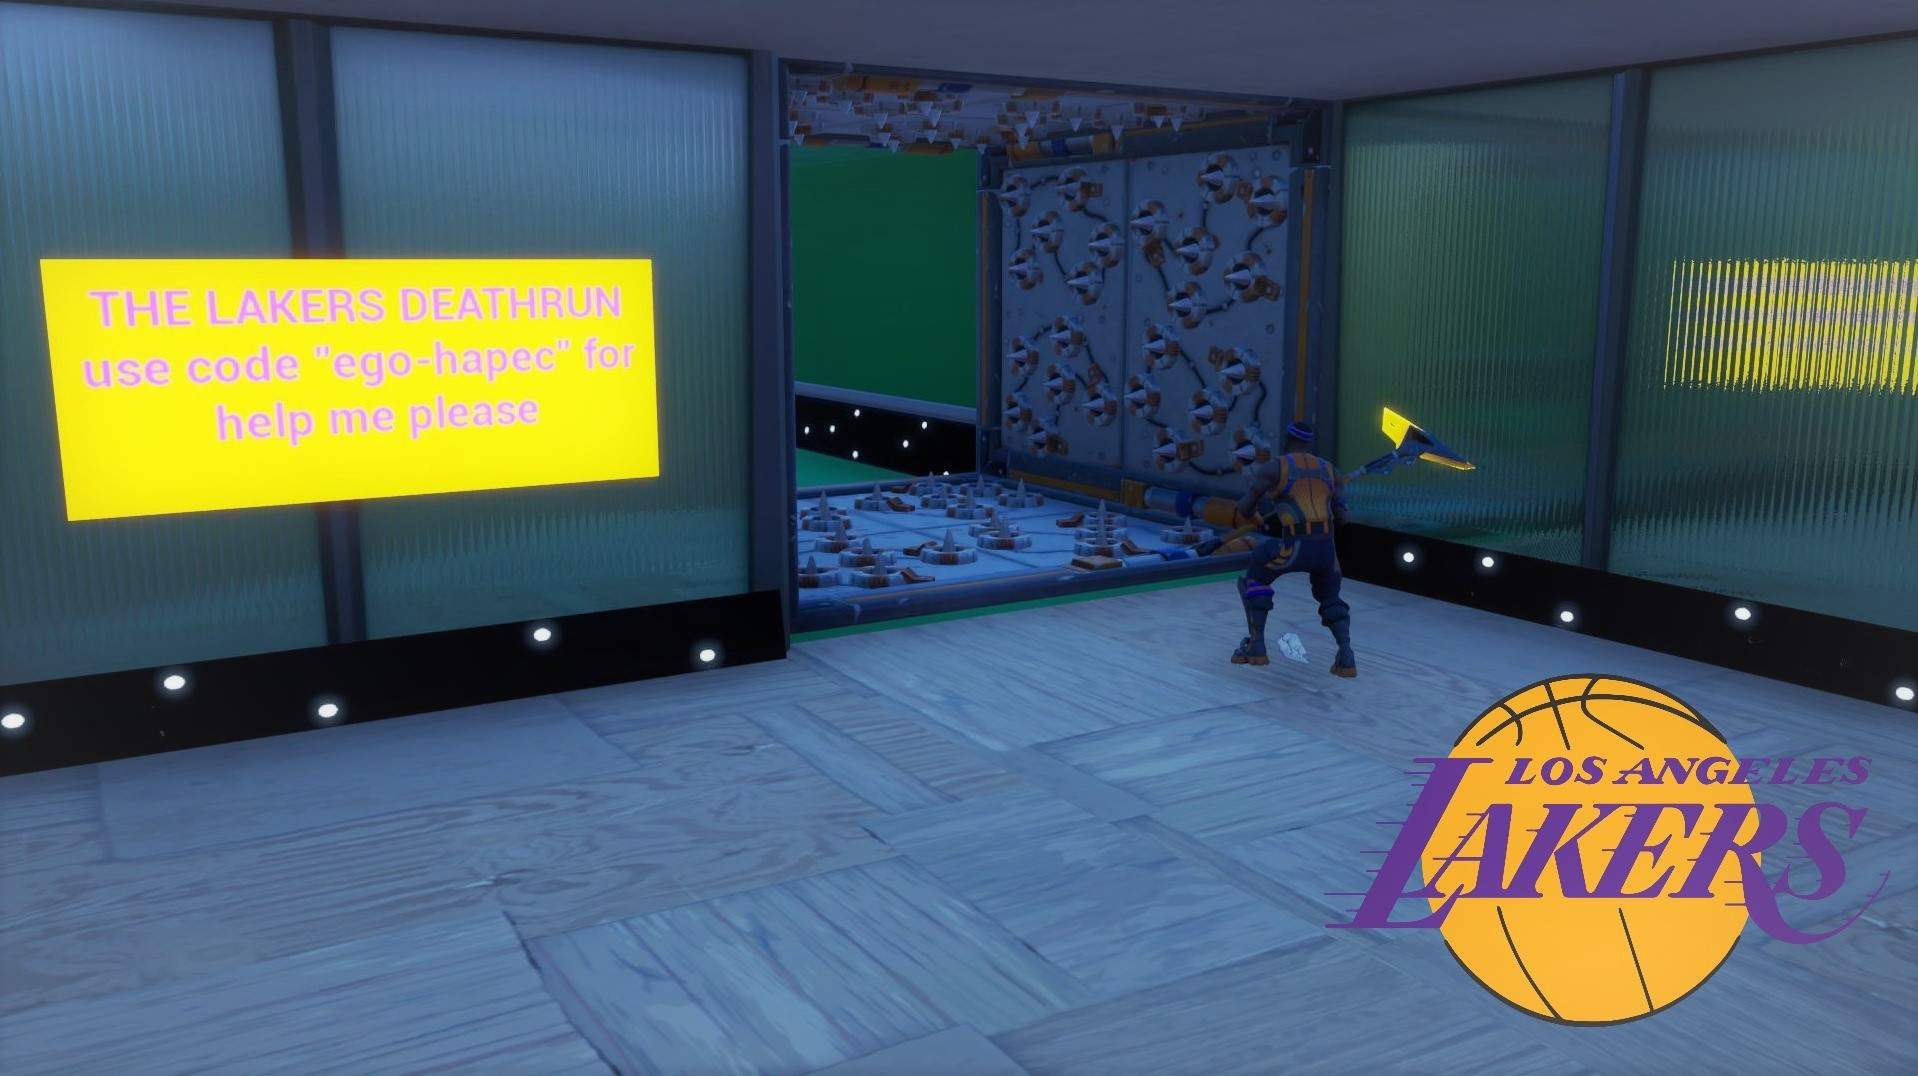 THE LAKERS DEATHRUN